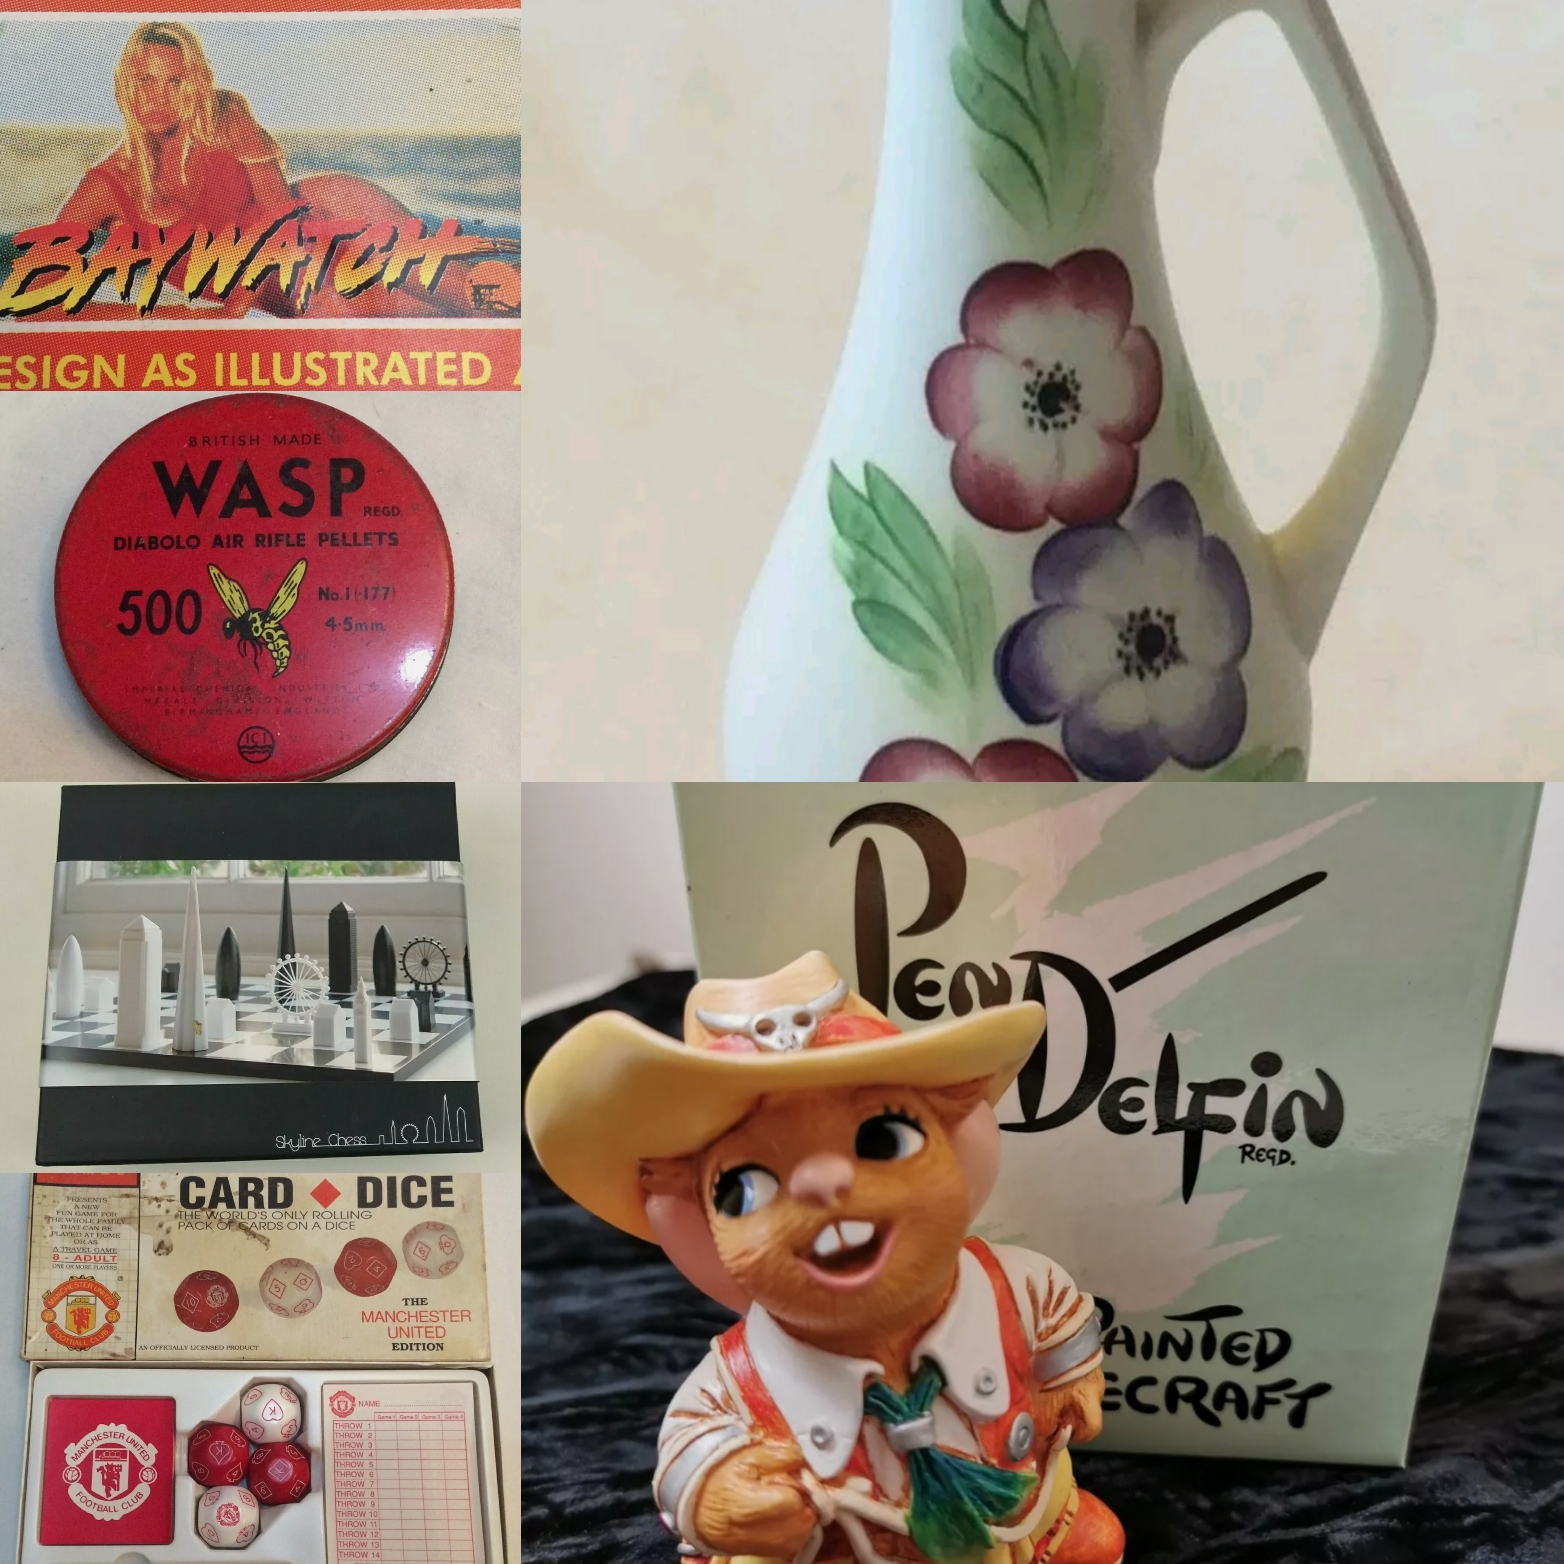 eBay - Collectibles, clothes and random shiny things :)